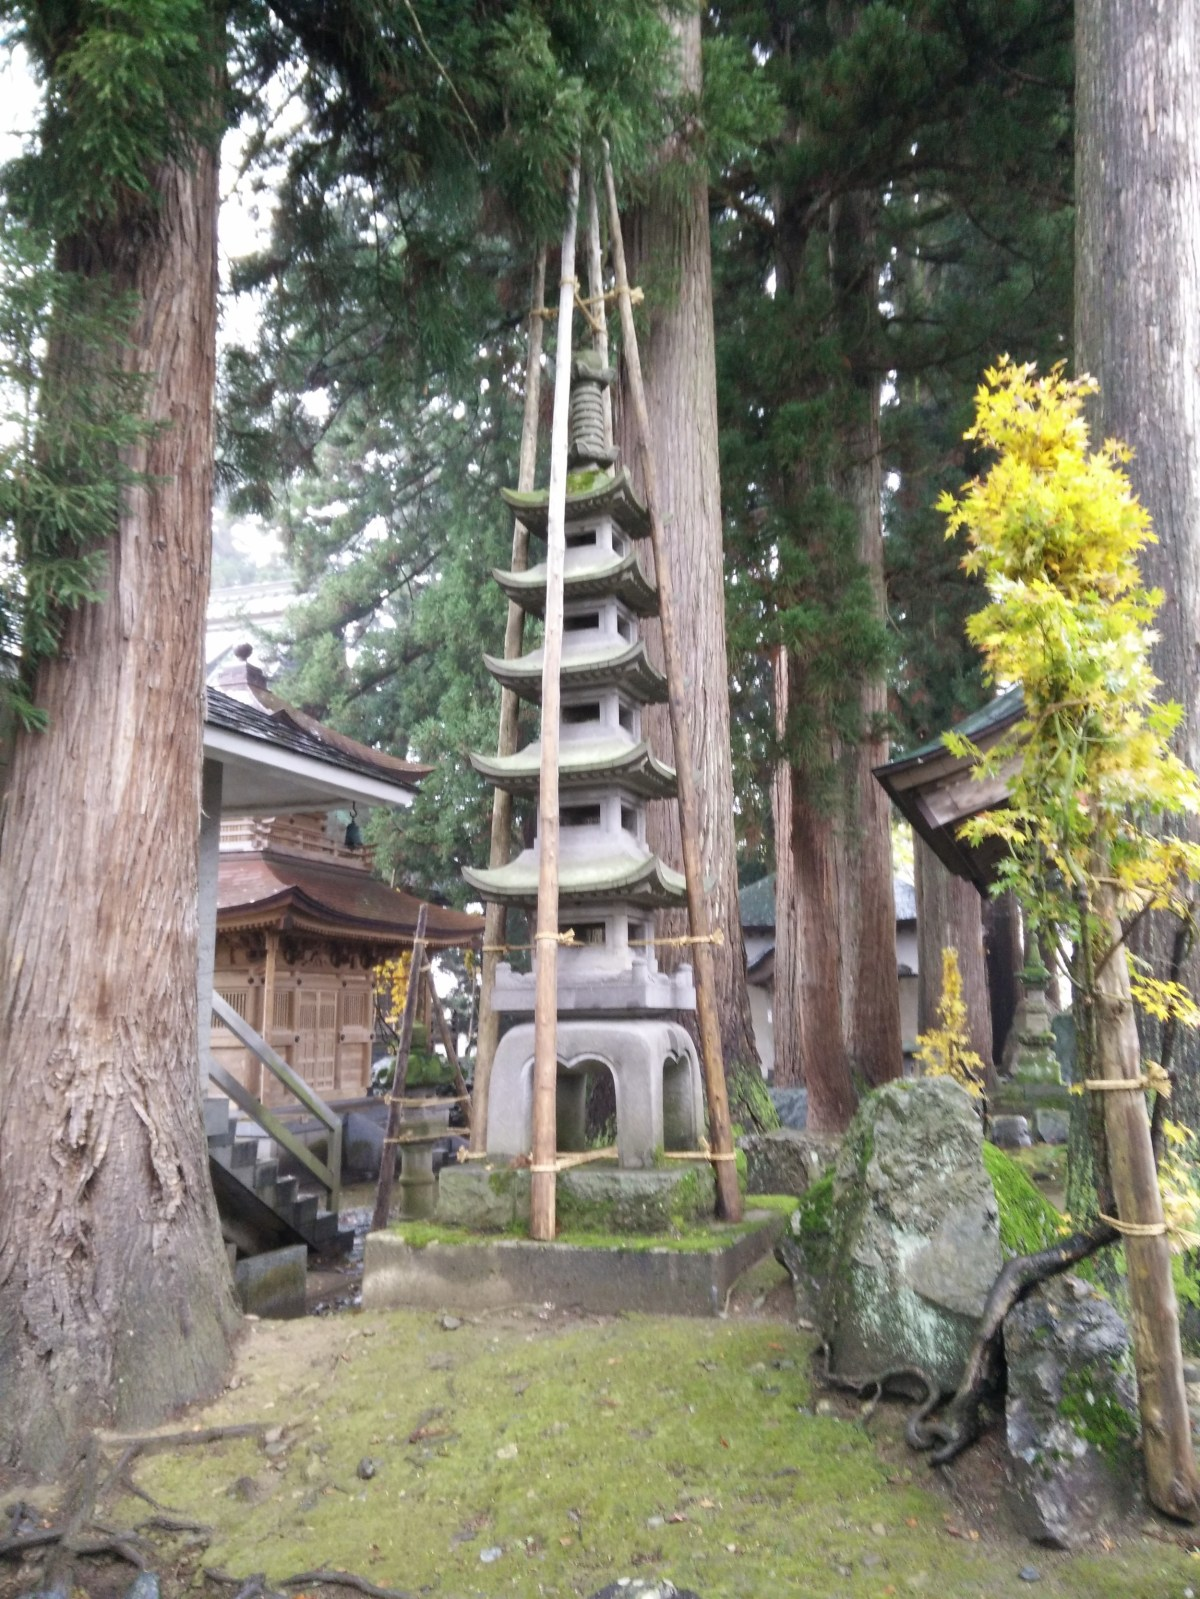 Enpuku-ji temple in Koide